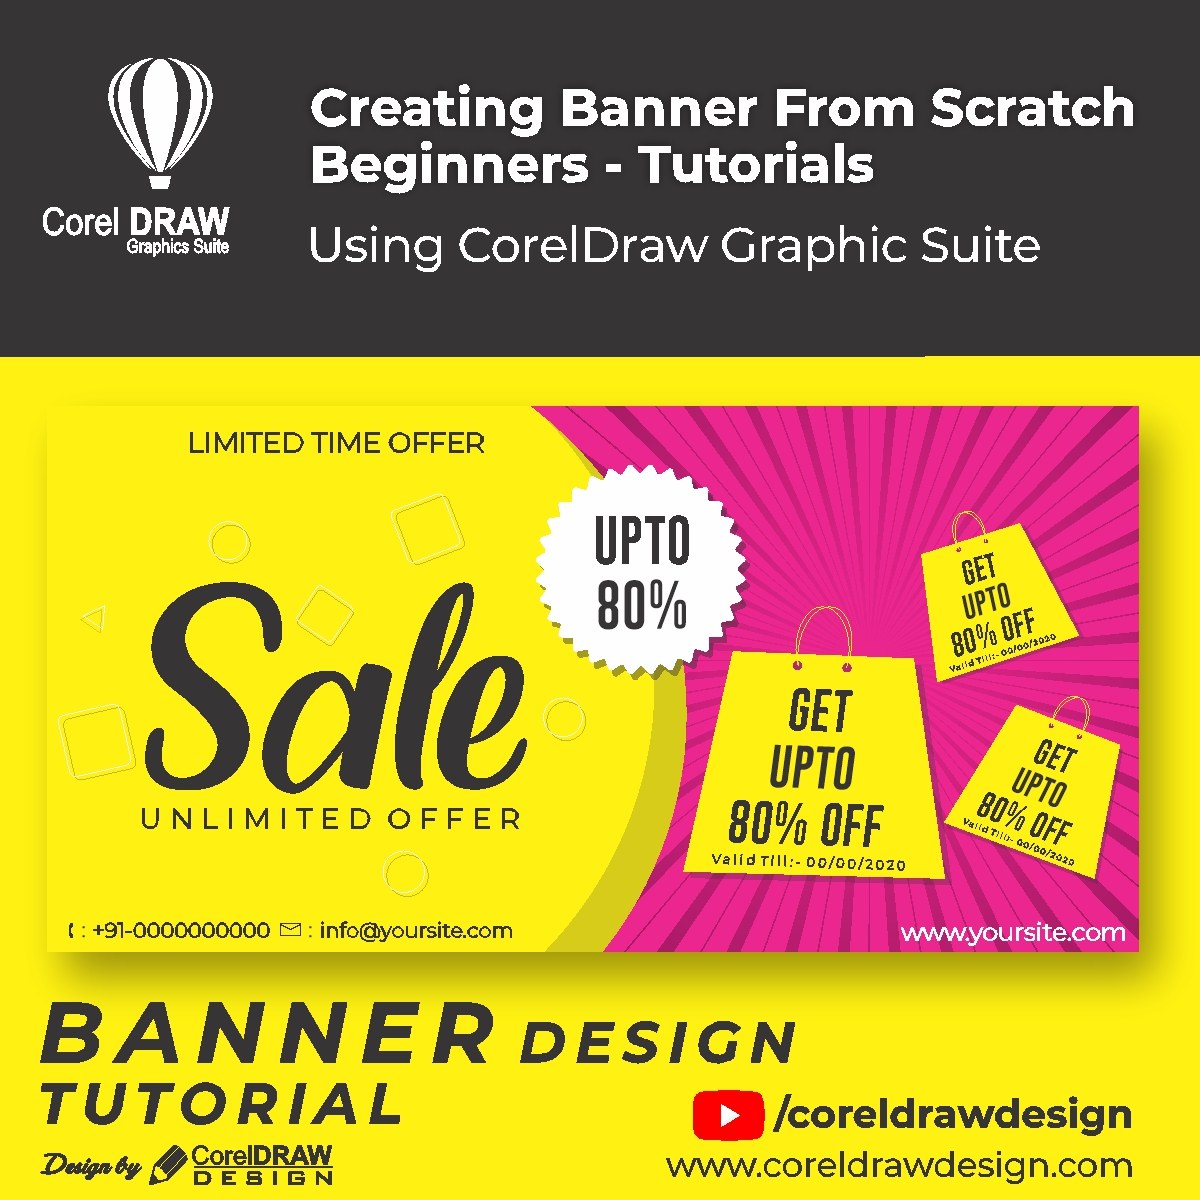 Creating From Scratch Sale Banner Digital Graphics Tutorial Coreldraw for Beginners